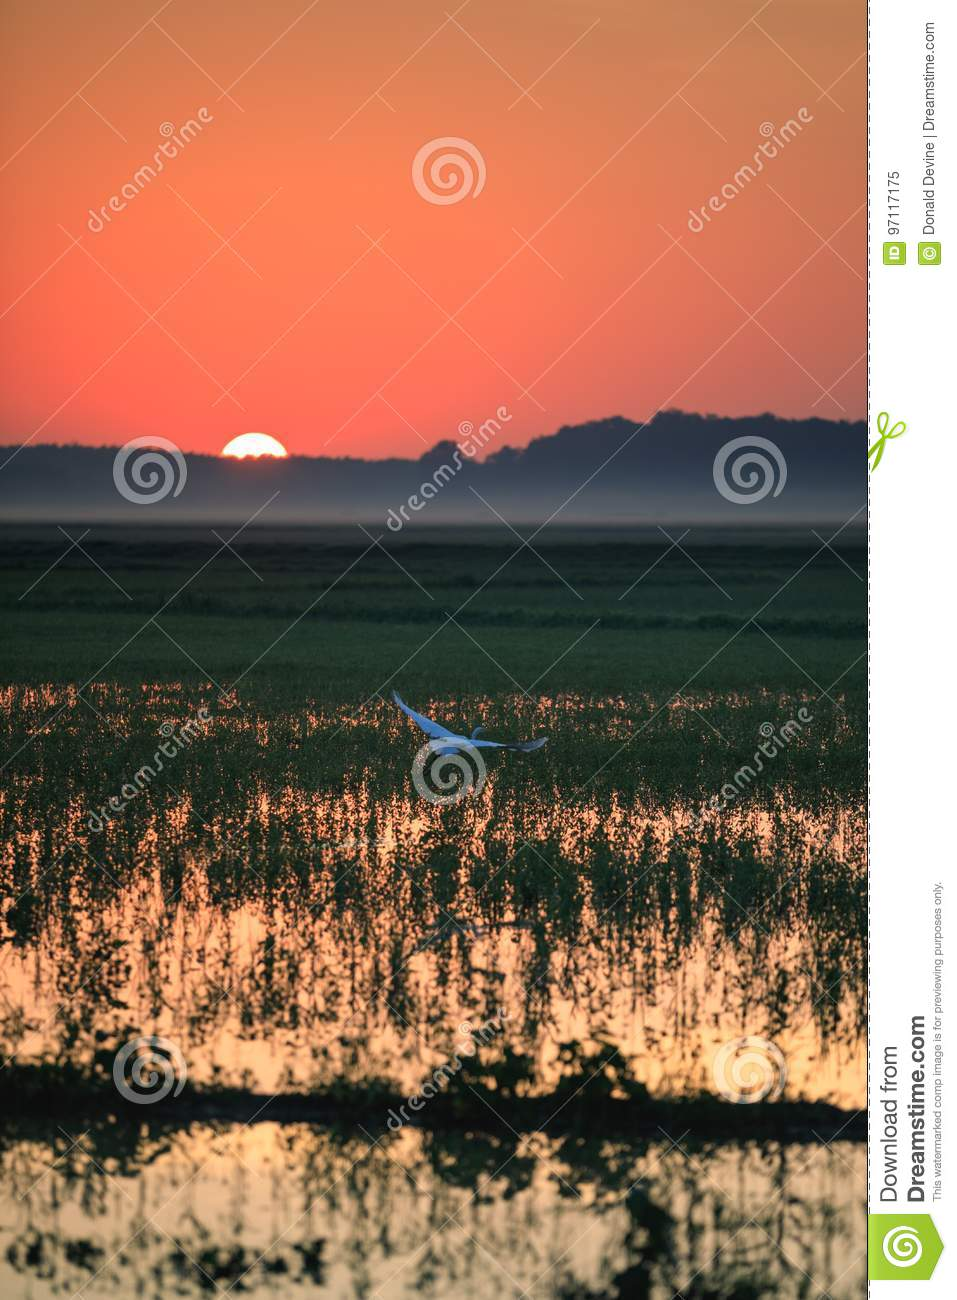 A Great Egret takes flight in a rice field during sunrise over Bald Knob National Wildlife Refuge